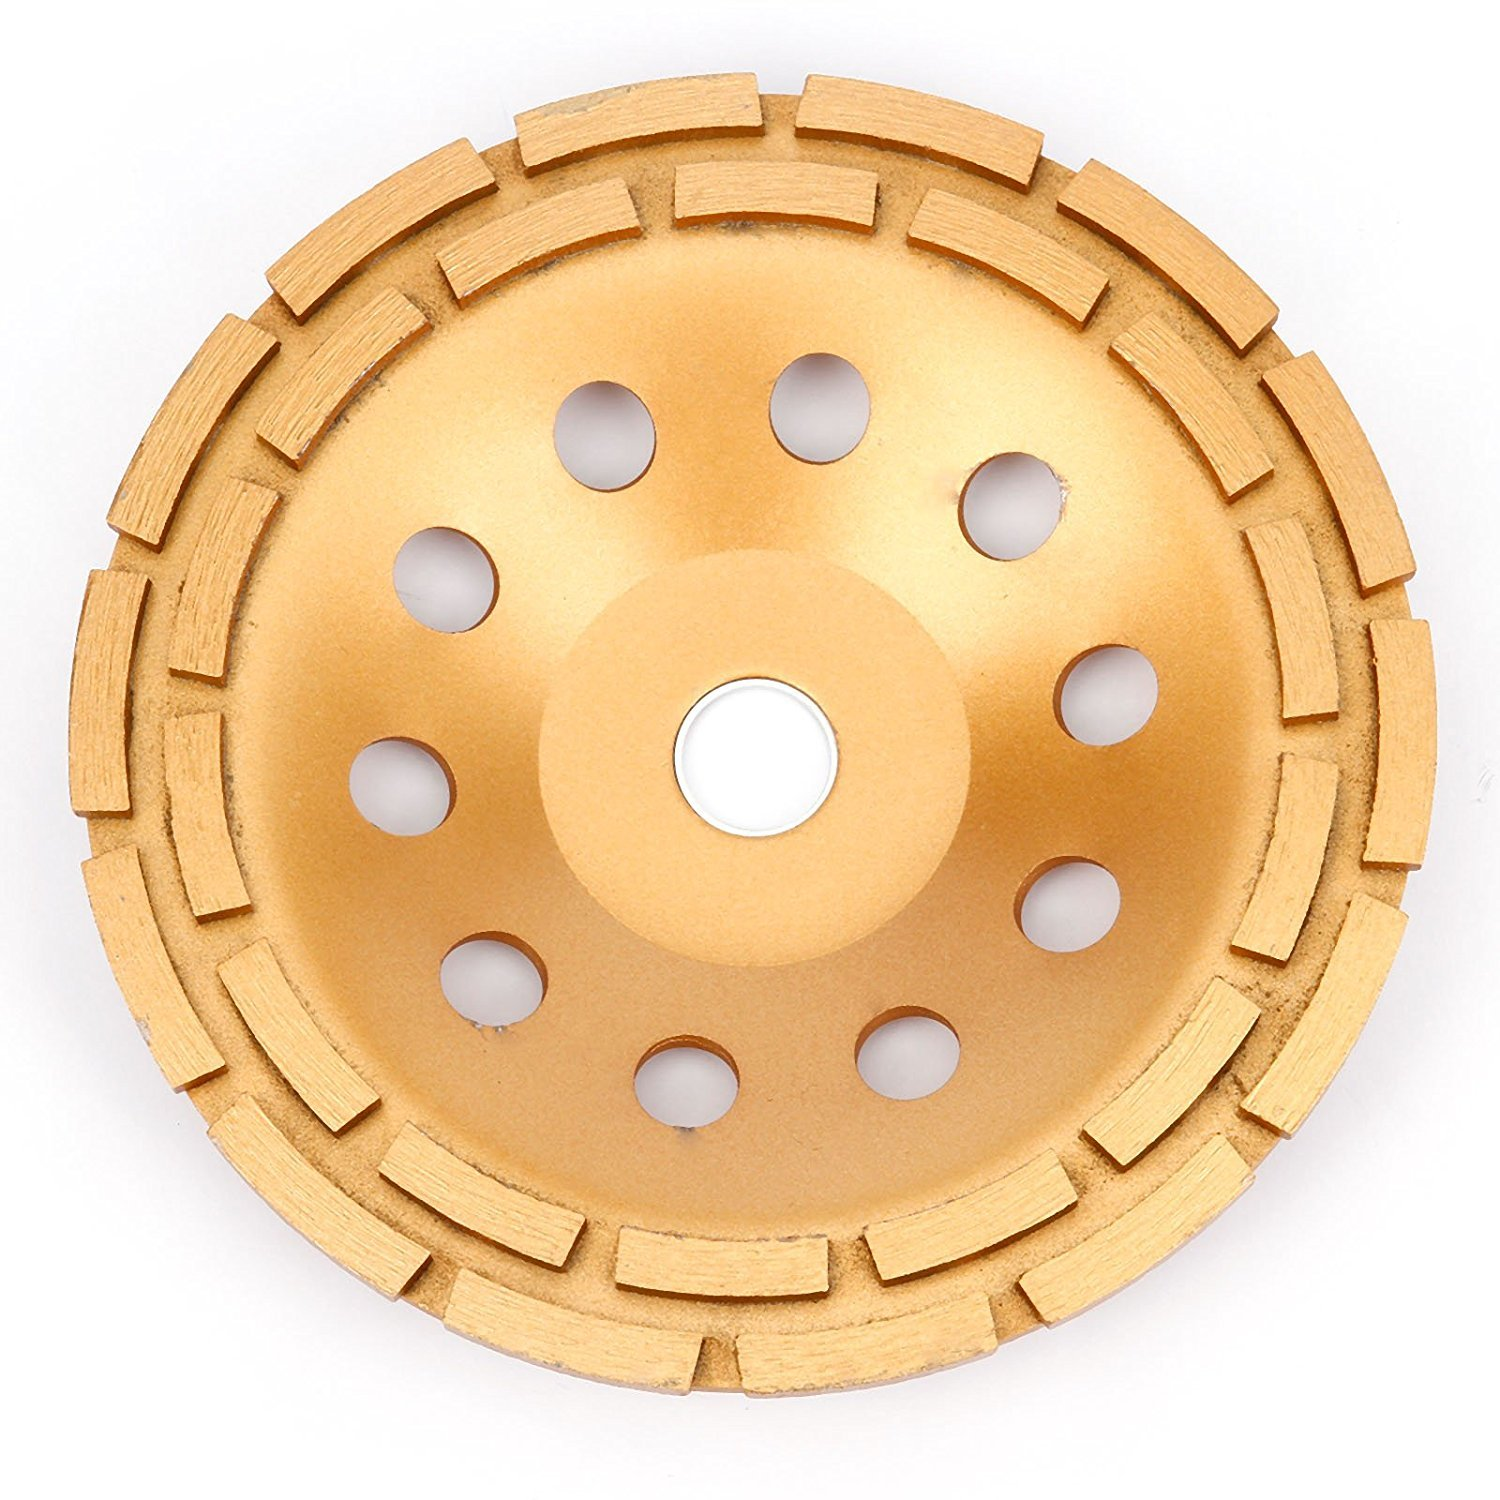 APLUS Diamond Grinder Disc 125mm 4.92// Diamond Cup Wheel Double Segmented for : Concrete Marble Granite Natural stone